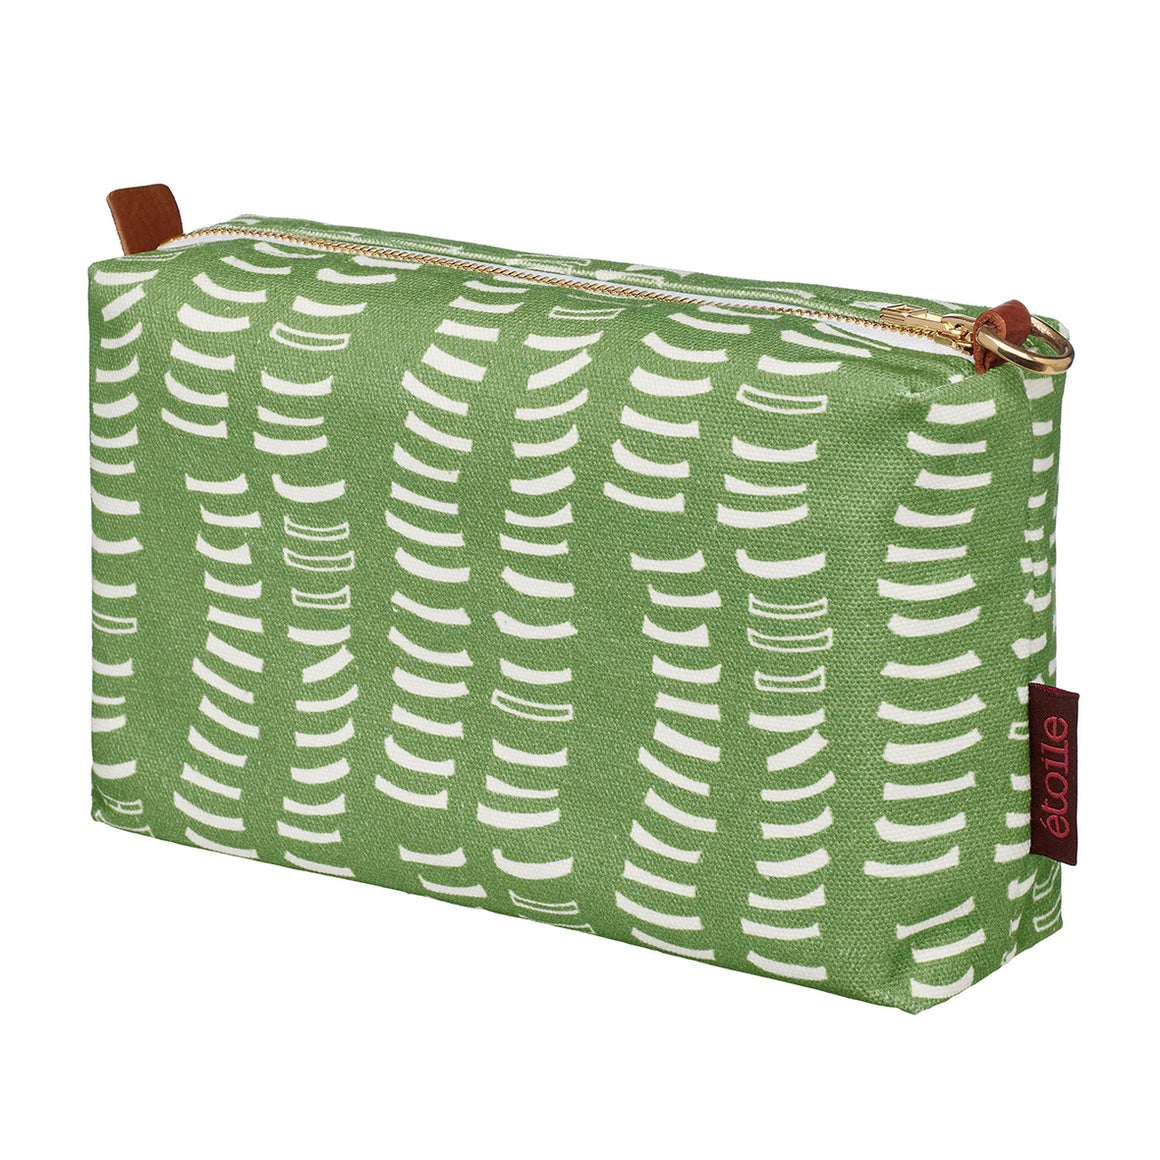 Avocado-pale-green-canvas-cotton-toiletry-bag-water-resistant-travel-cosmetic